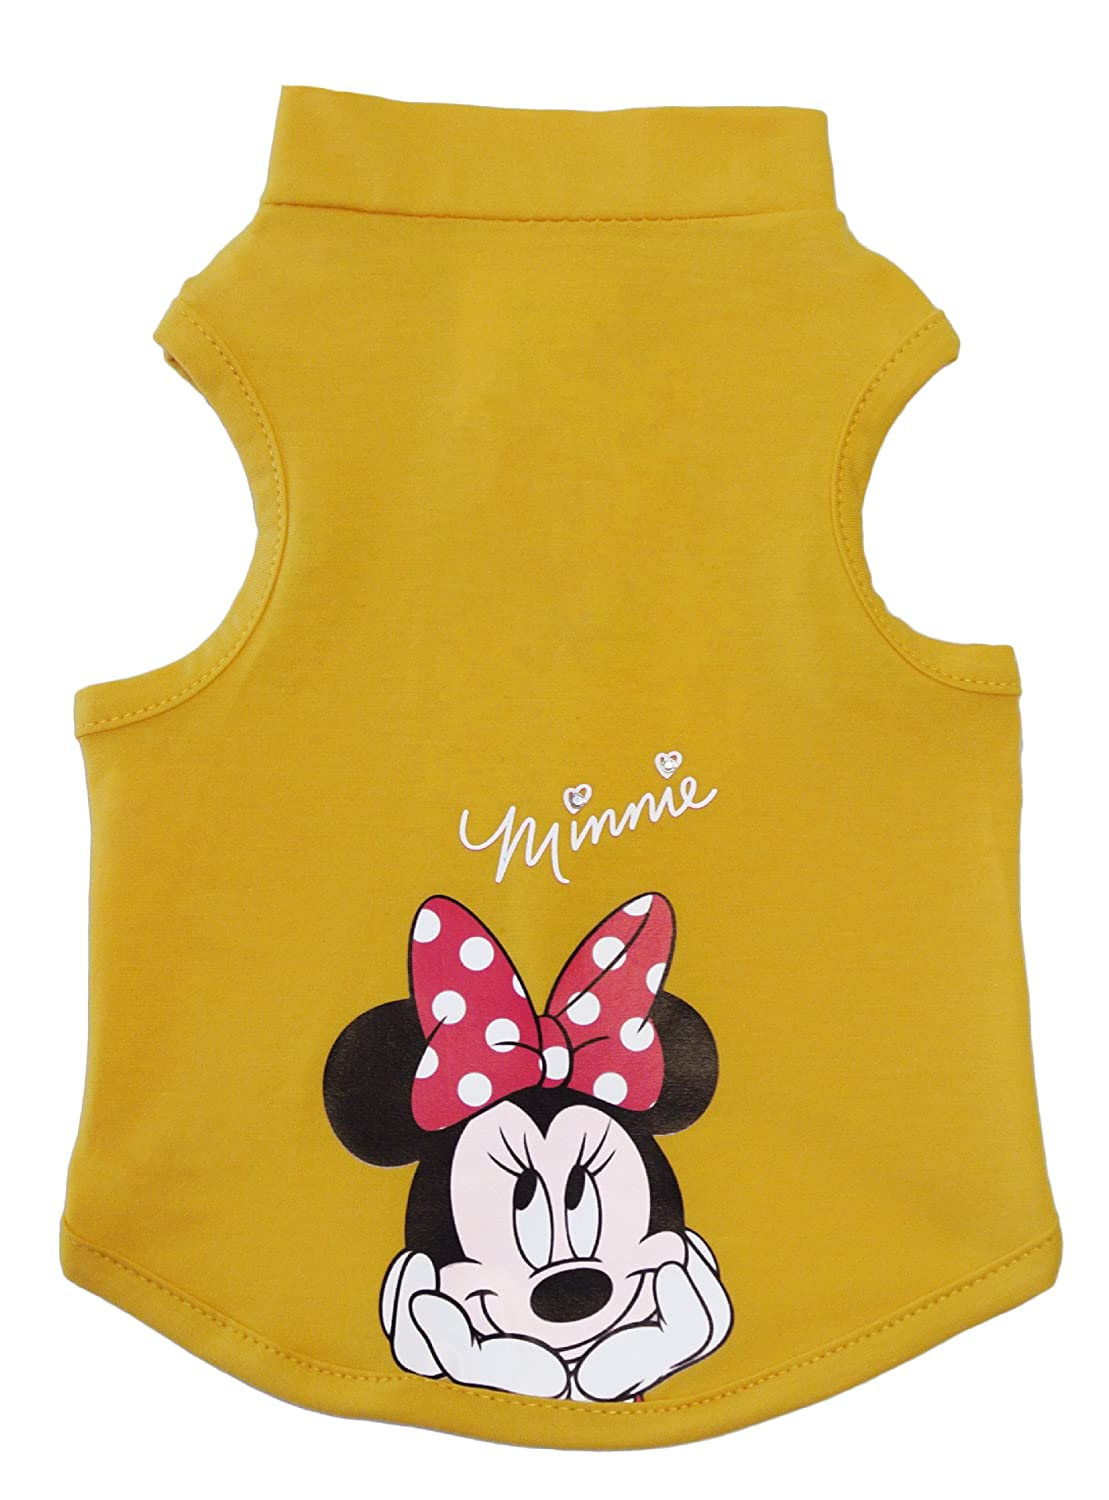 P3Sync Disney Minnie Mouse T-shirt (Yellow, Small) [Misc.]